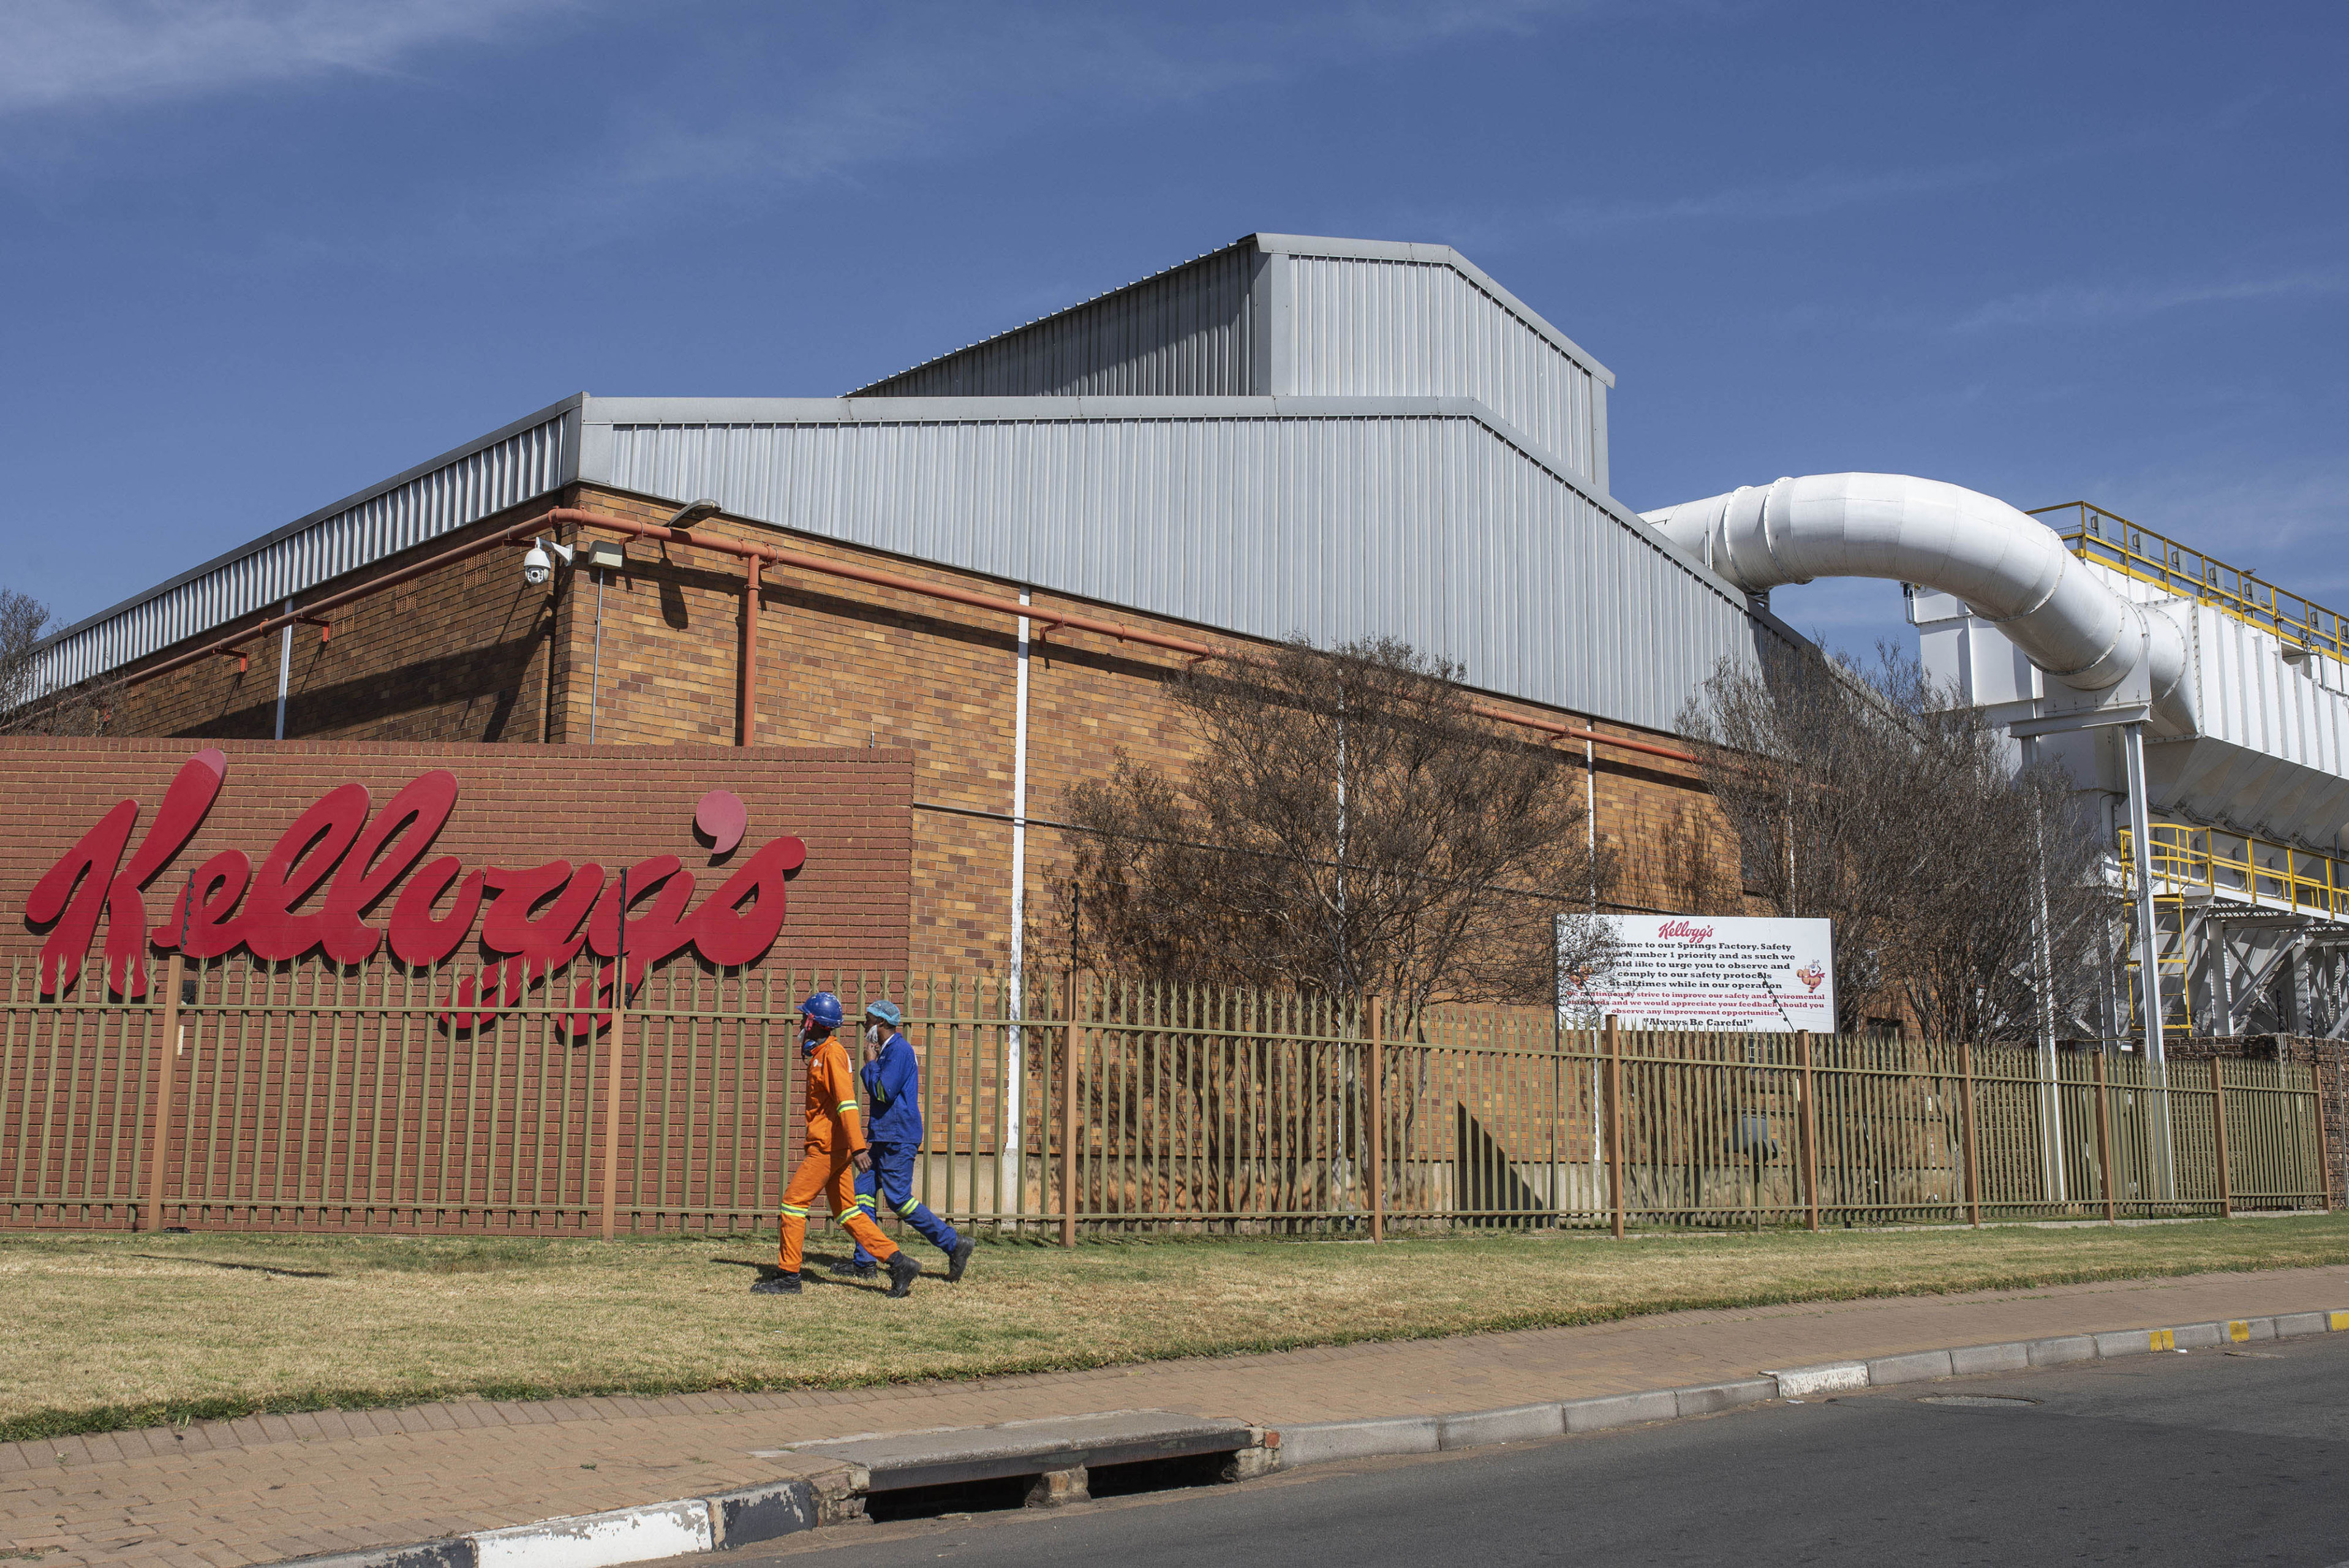 31 July 2018: Workers are seen walking outside the Kellogg's factory in Springs.